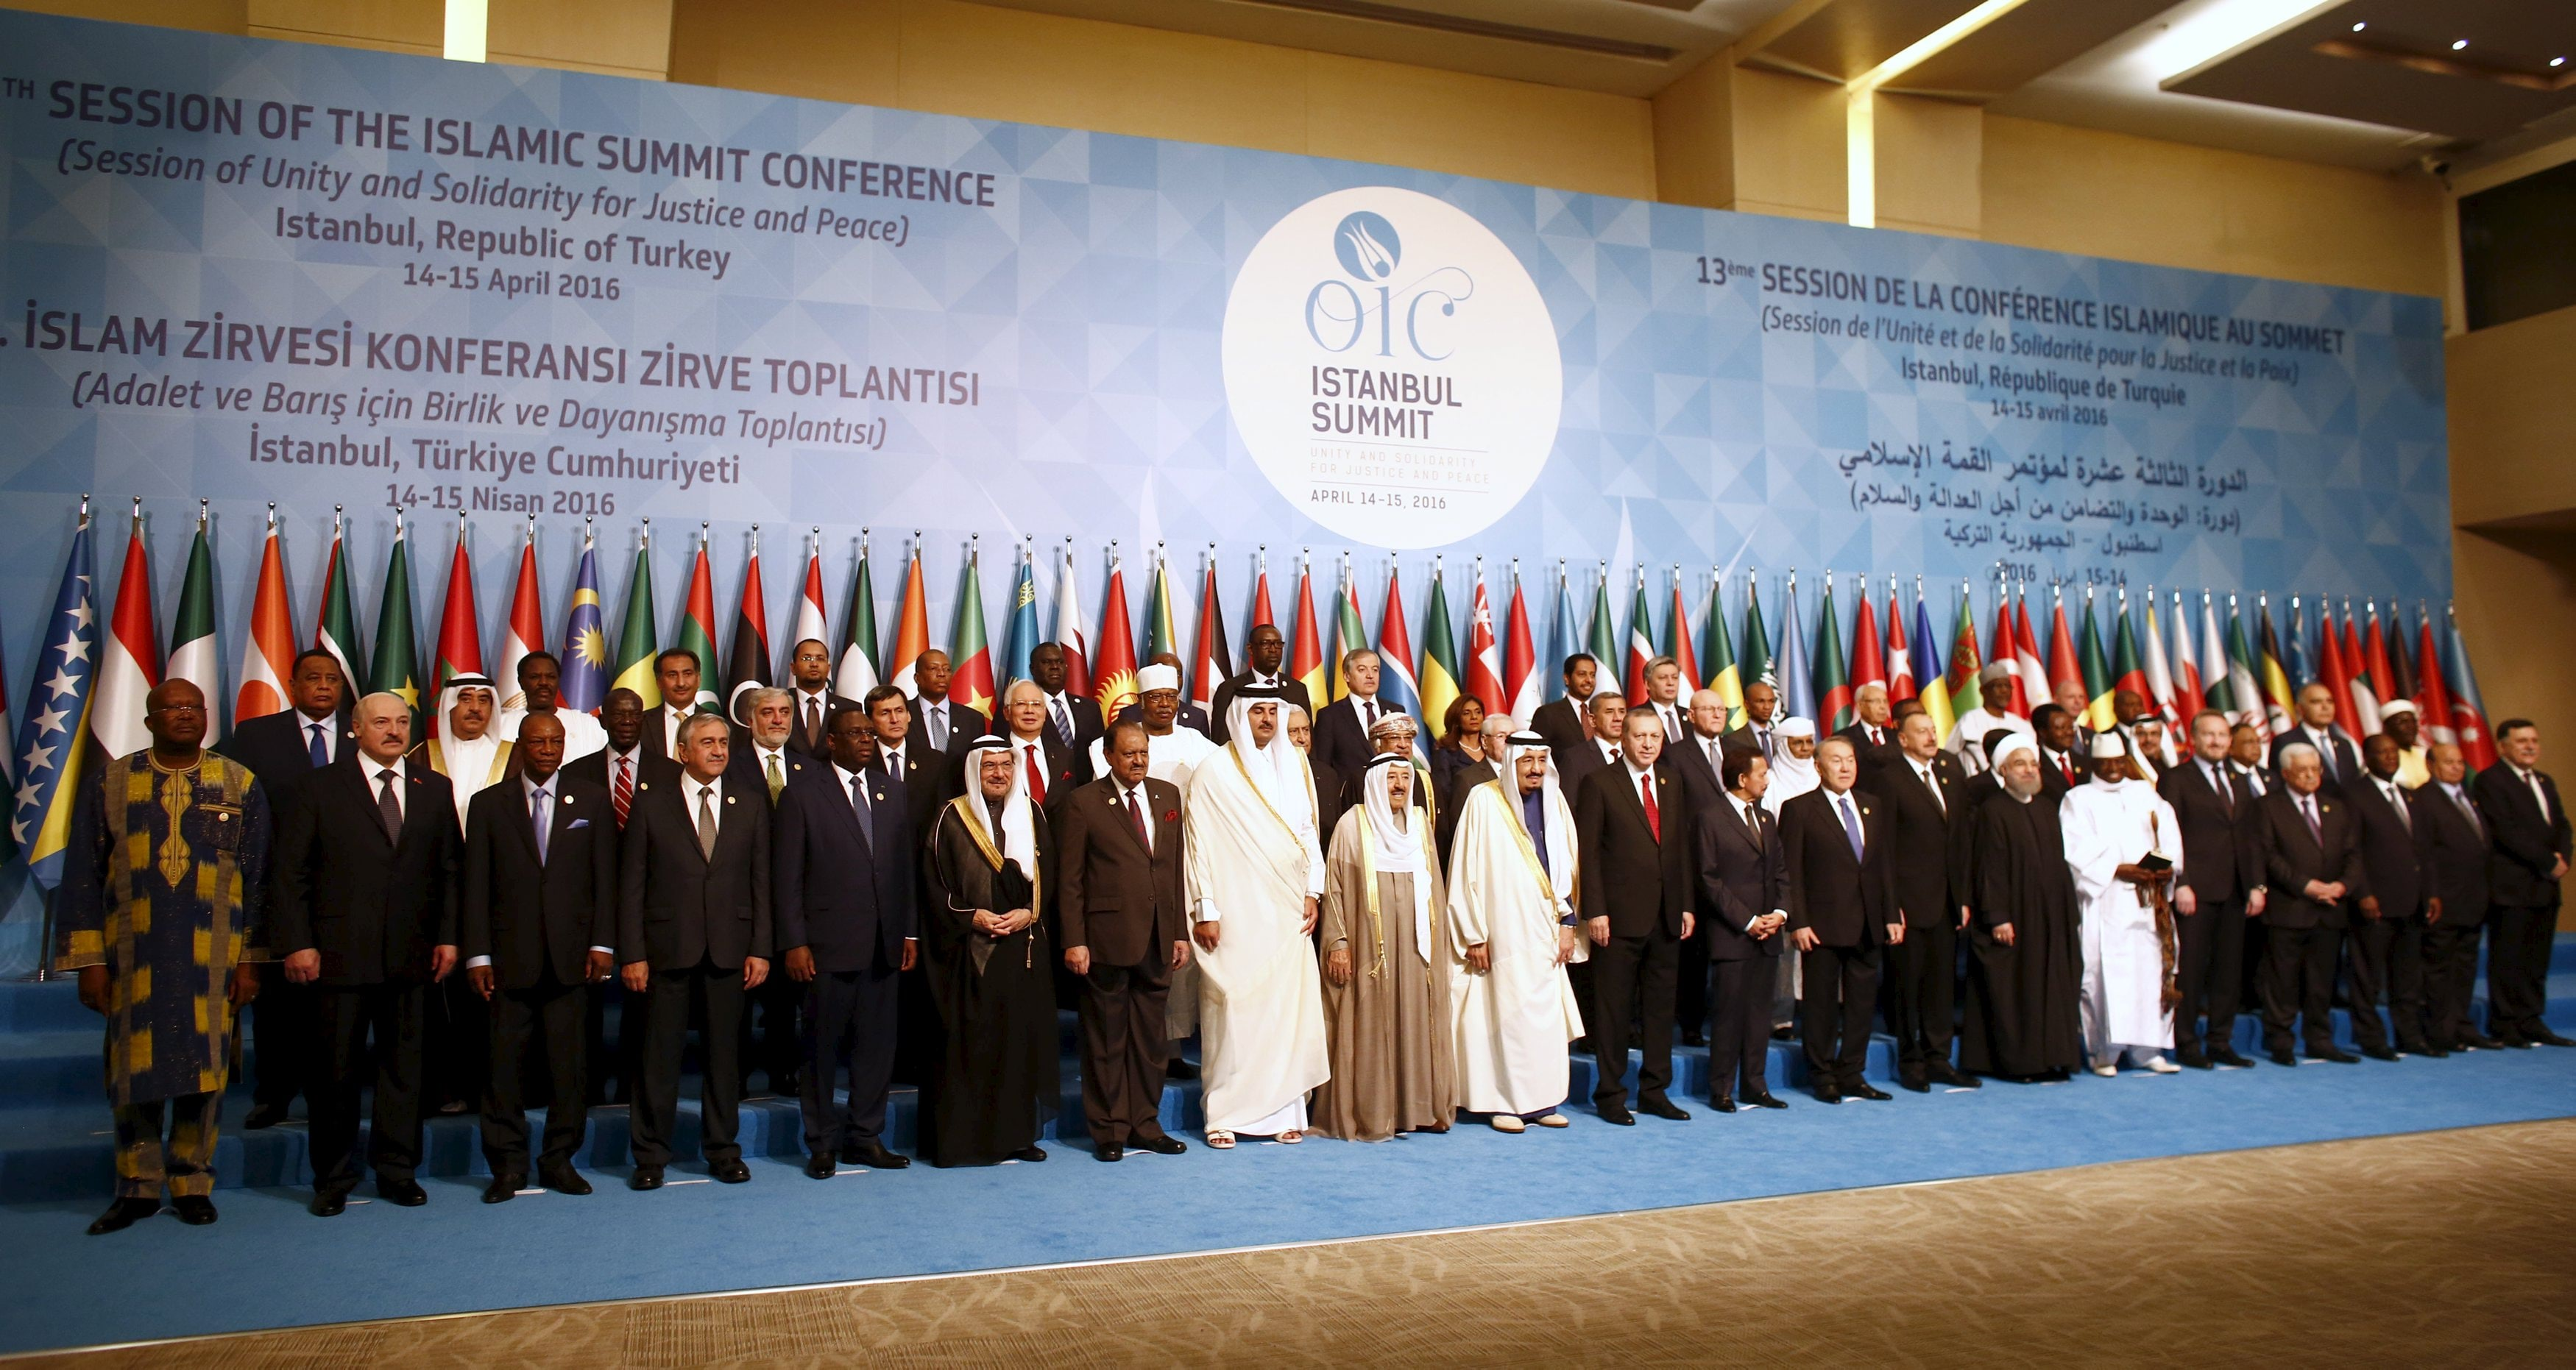 Leaders and representatives of the Organisation of Islamic Cooperation (OIC) member states pose for a group photo during the Istanbul Summit in Istanbul